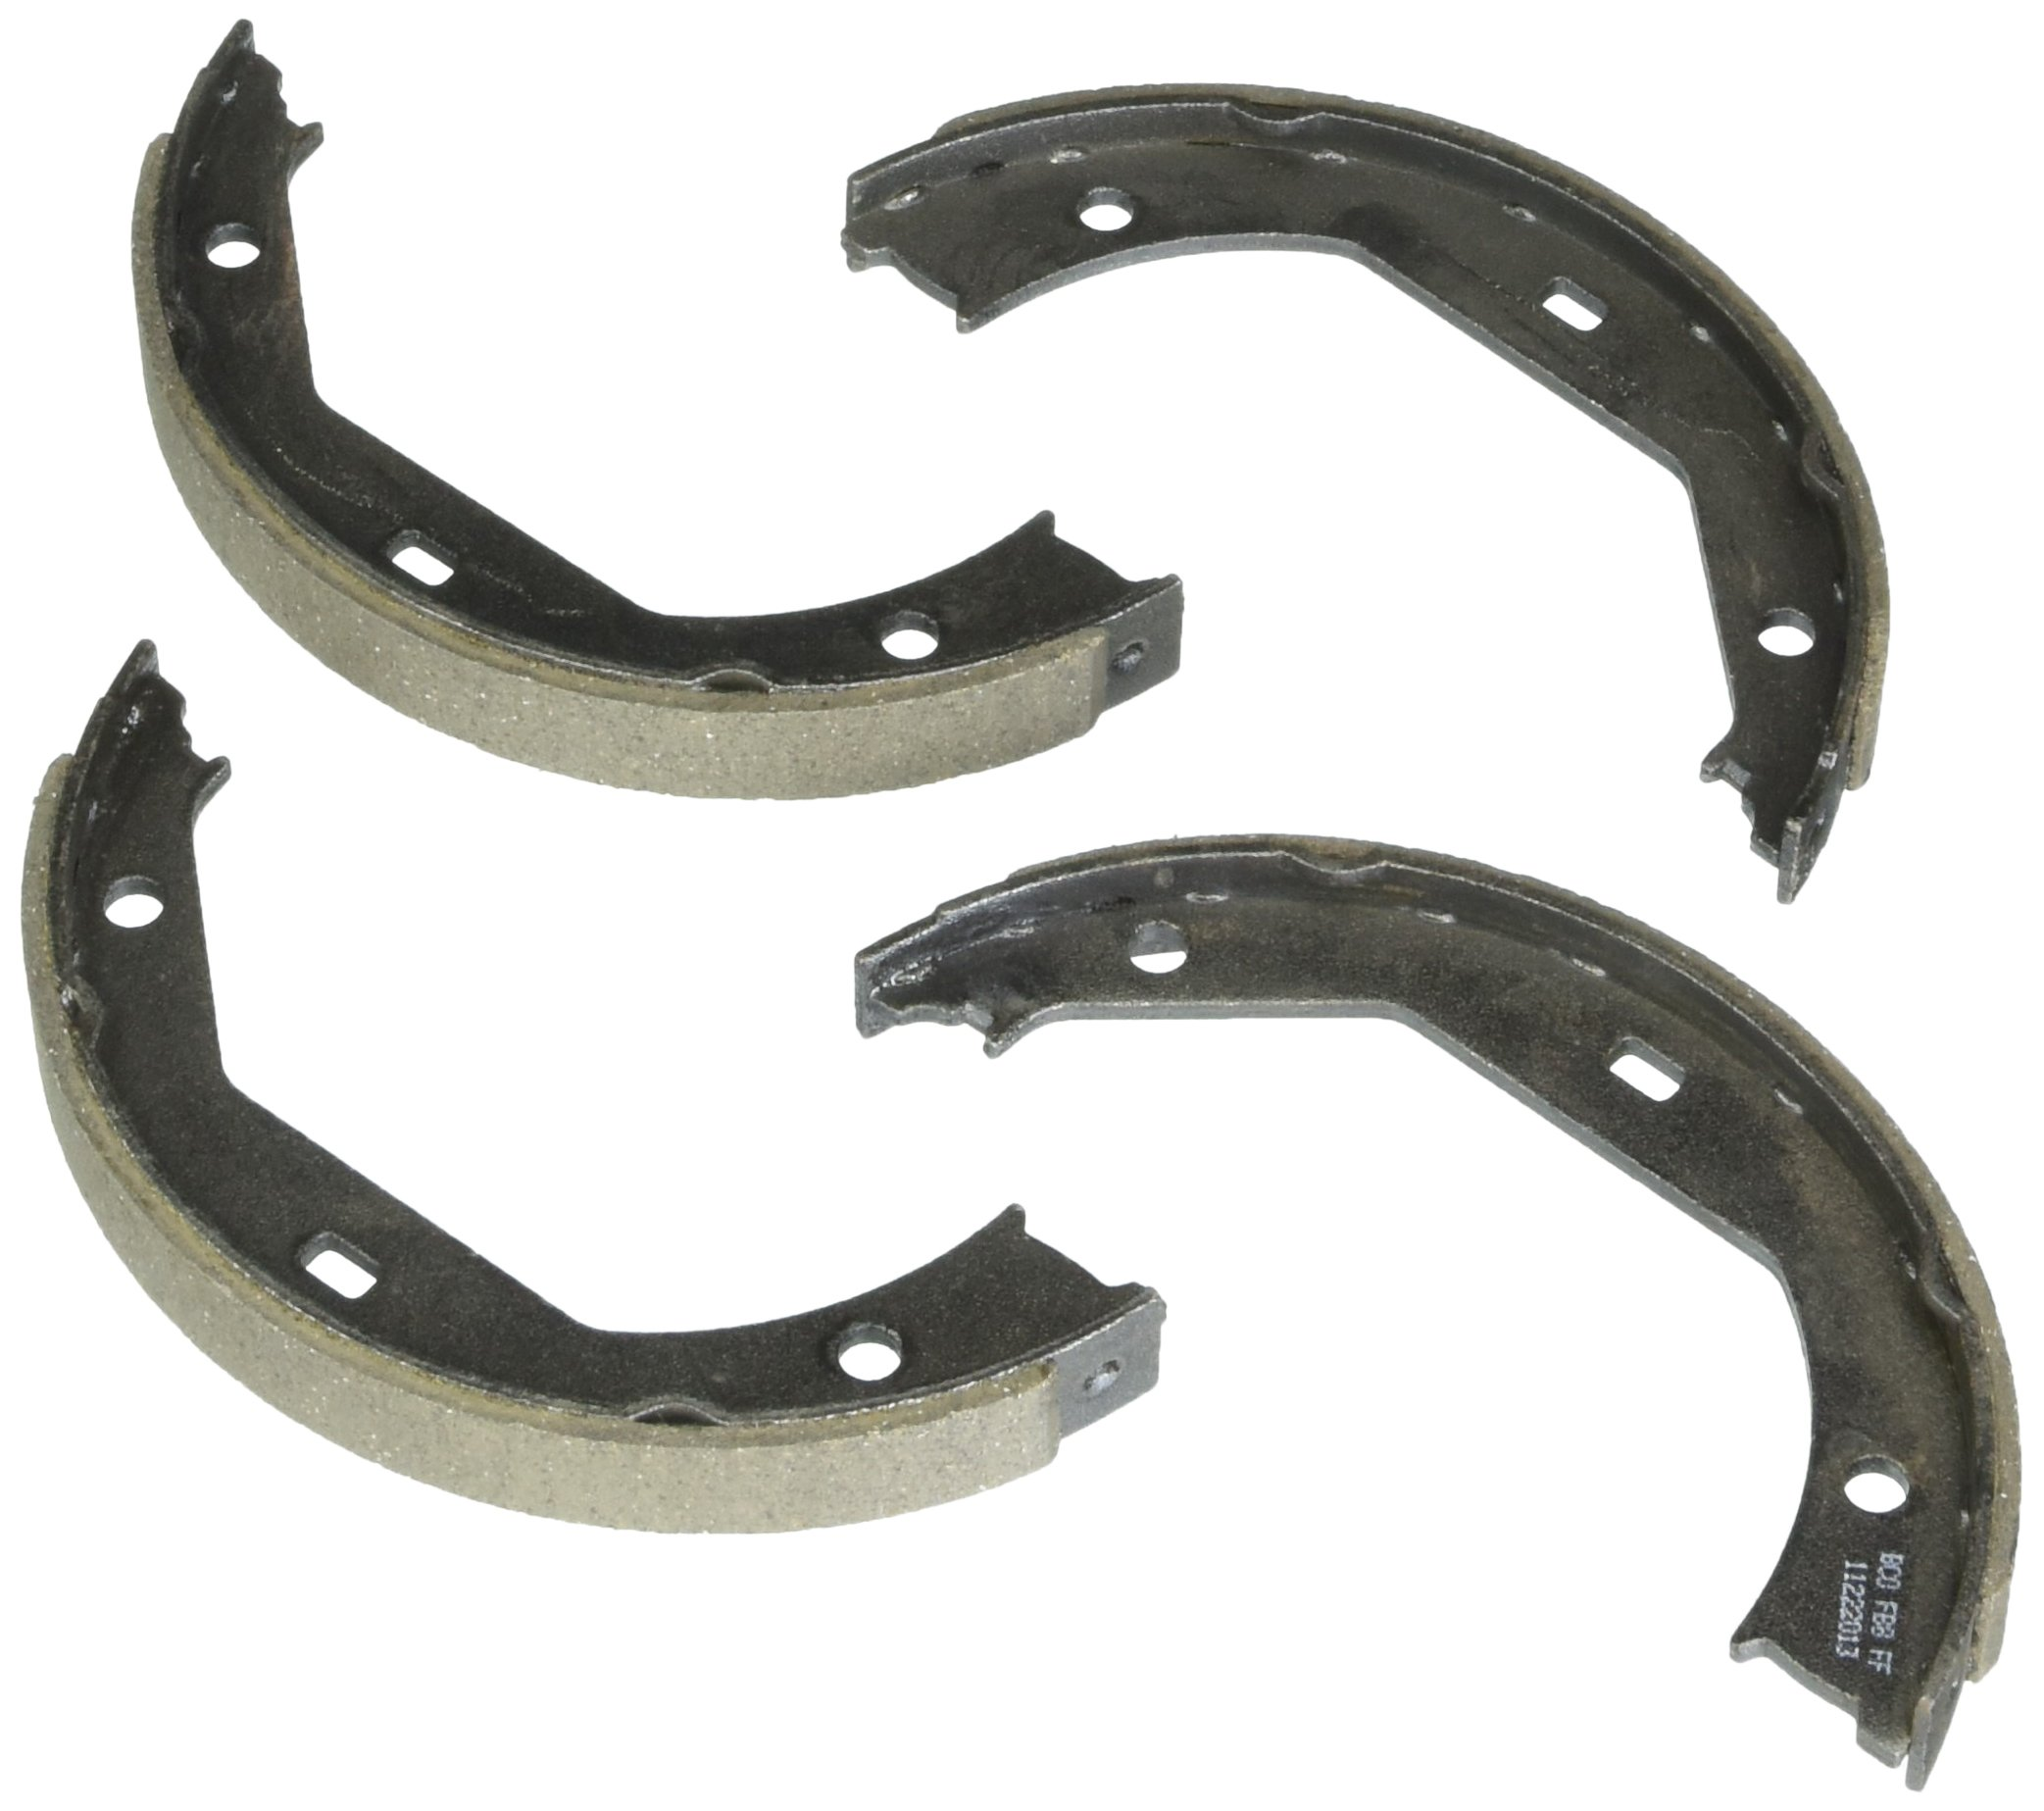 Bosch BS831 Blue Drum Parking Brake Shoe Set